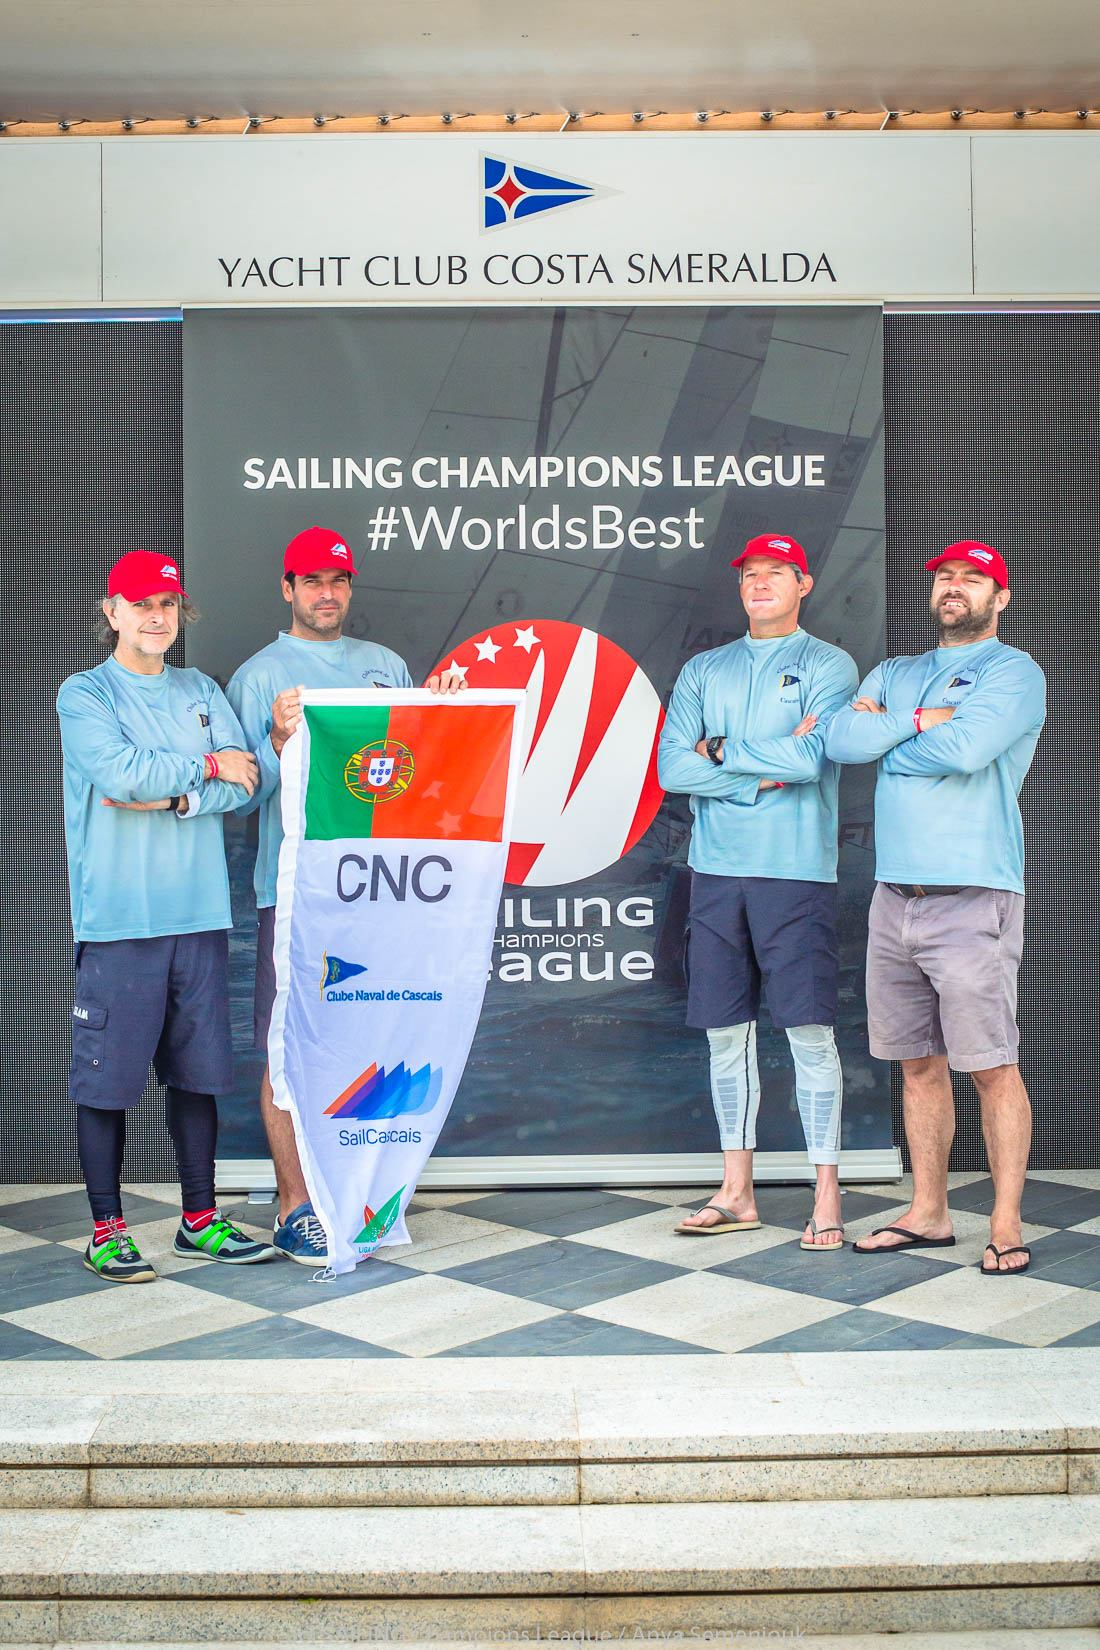 sailingleague 4